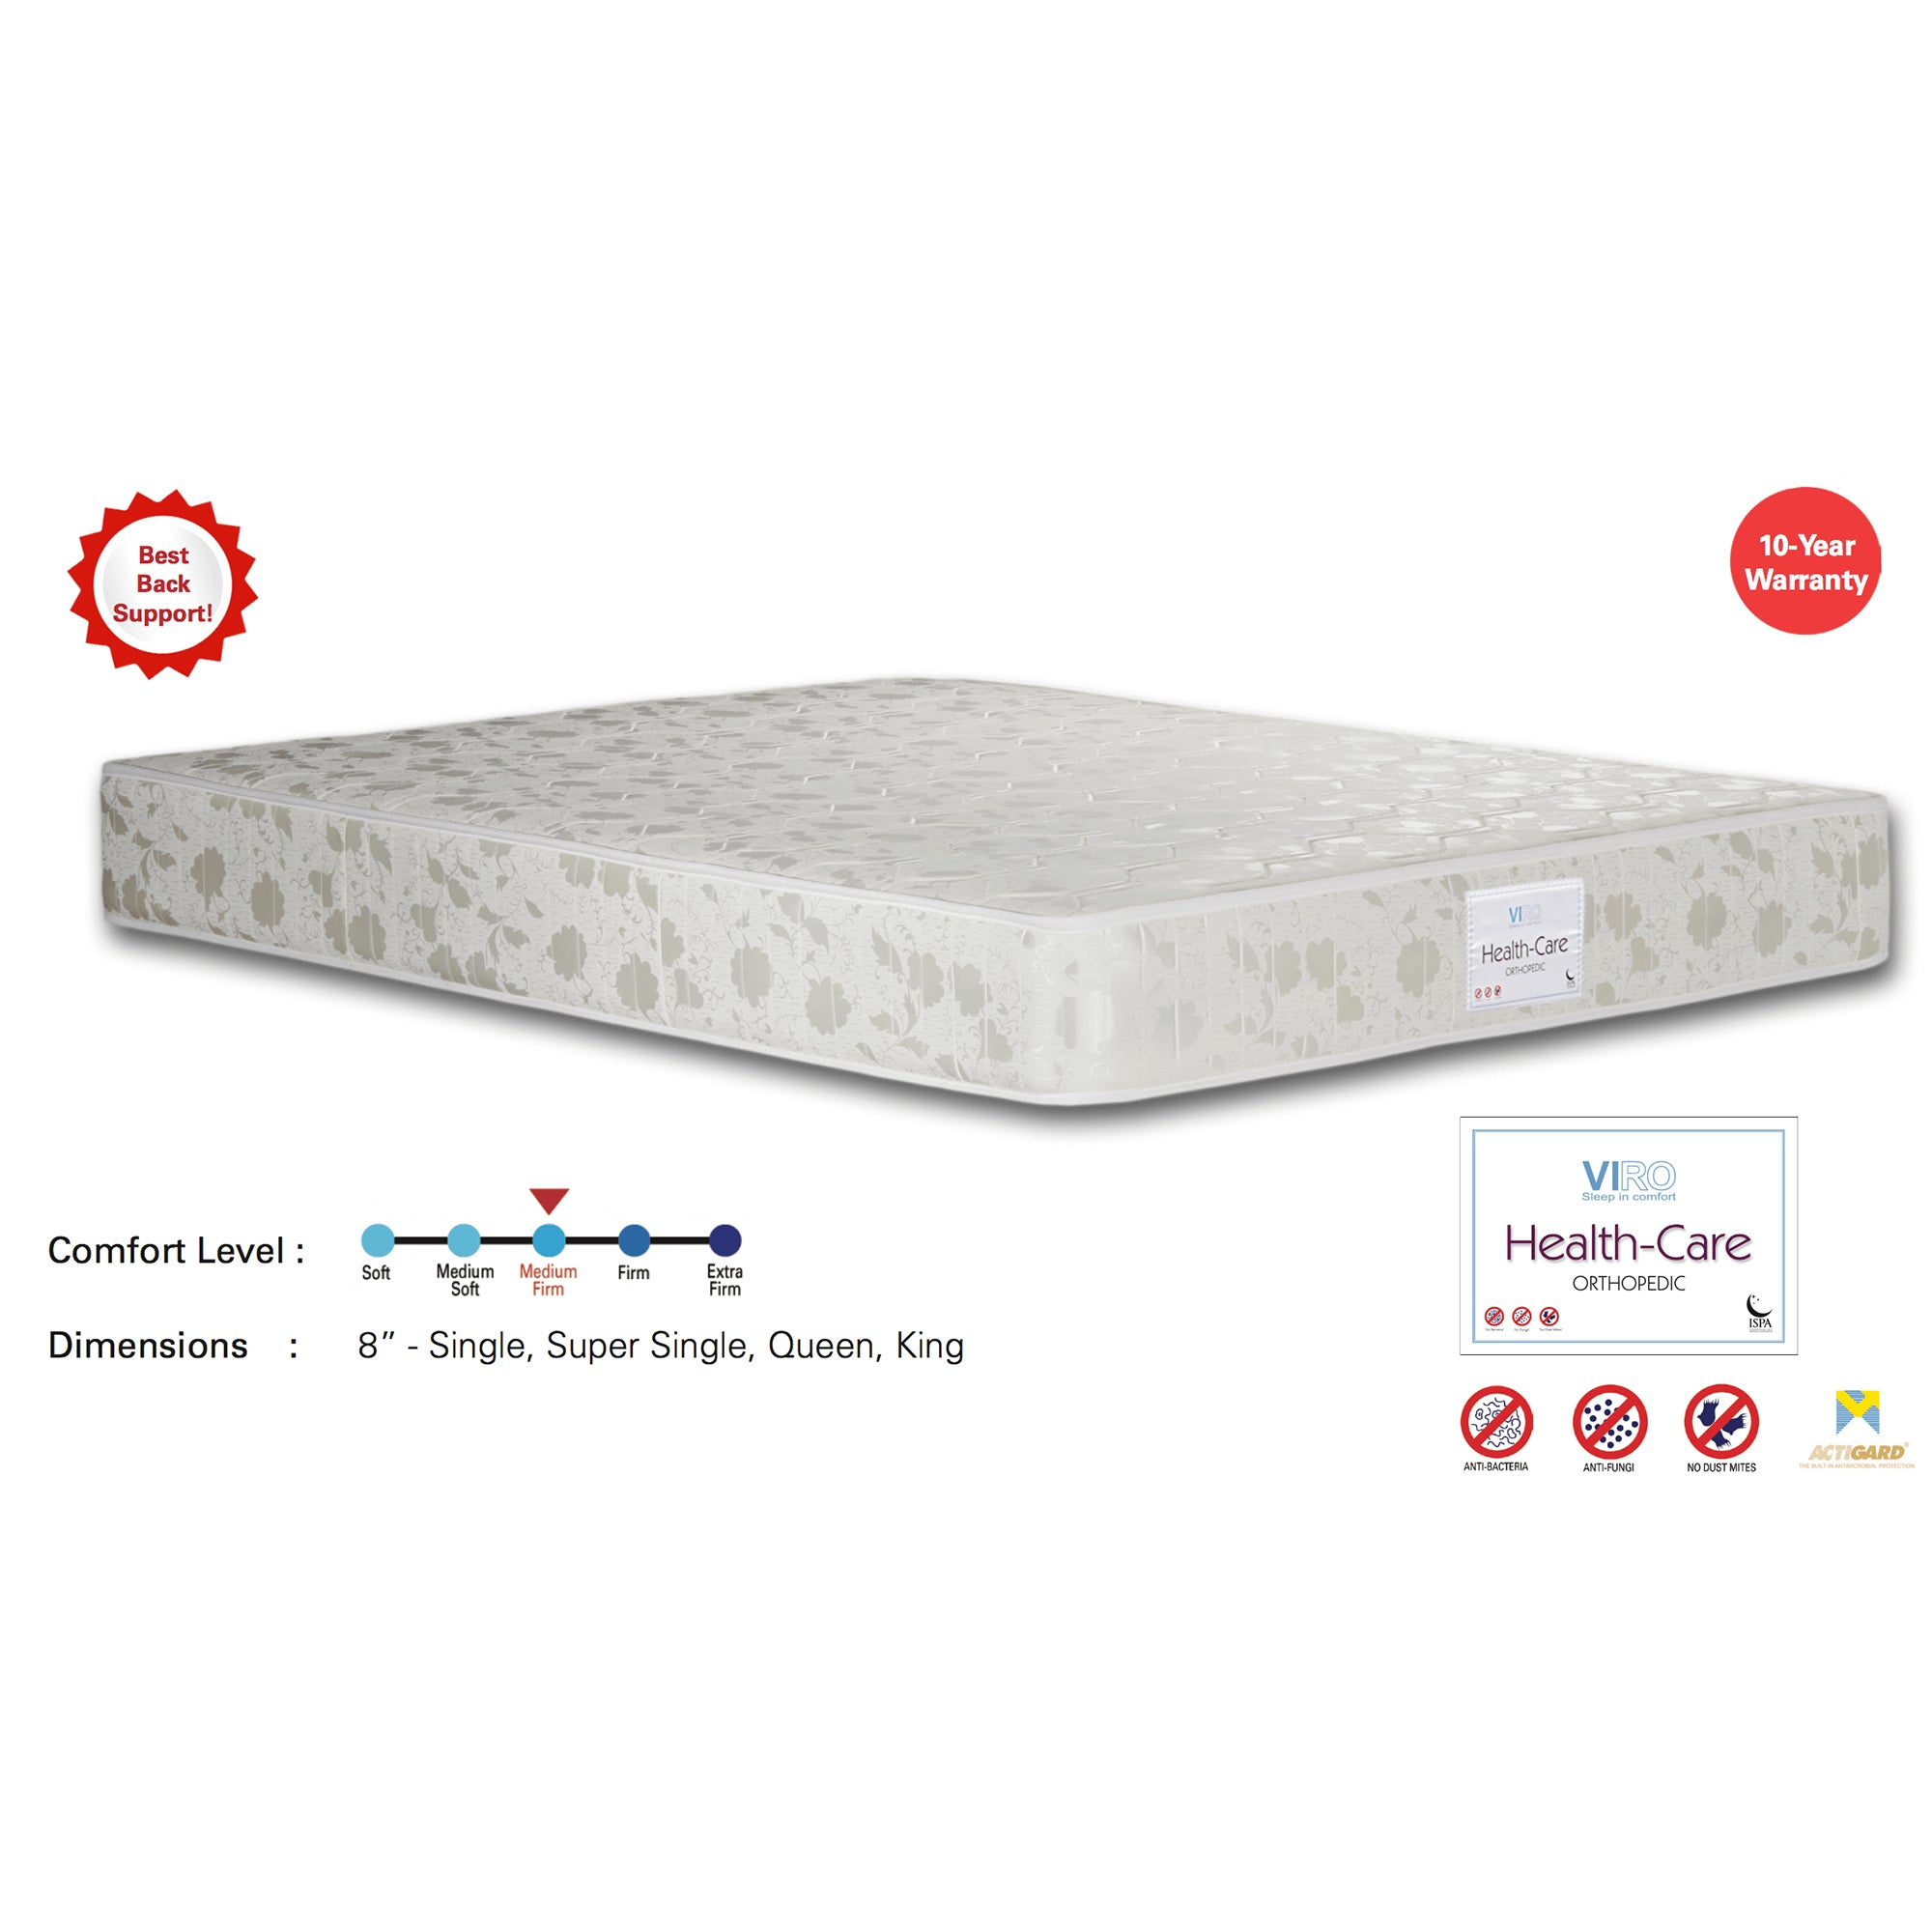 Viro Health-Care Spring Mattress (5 Feet Queen Size x 8